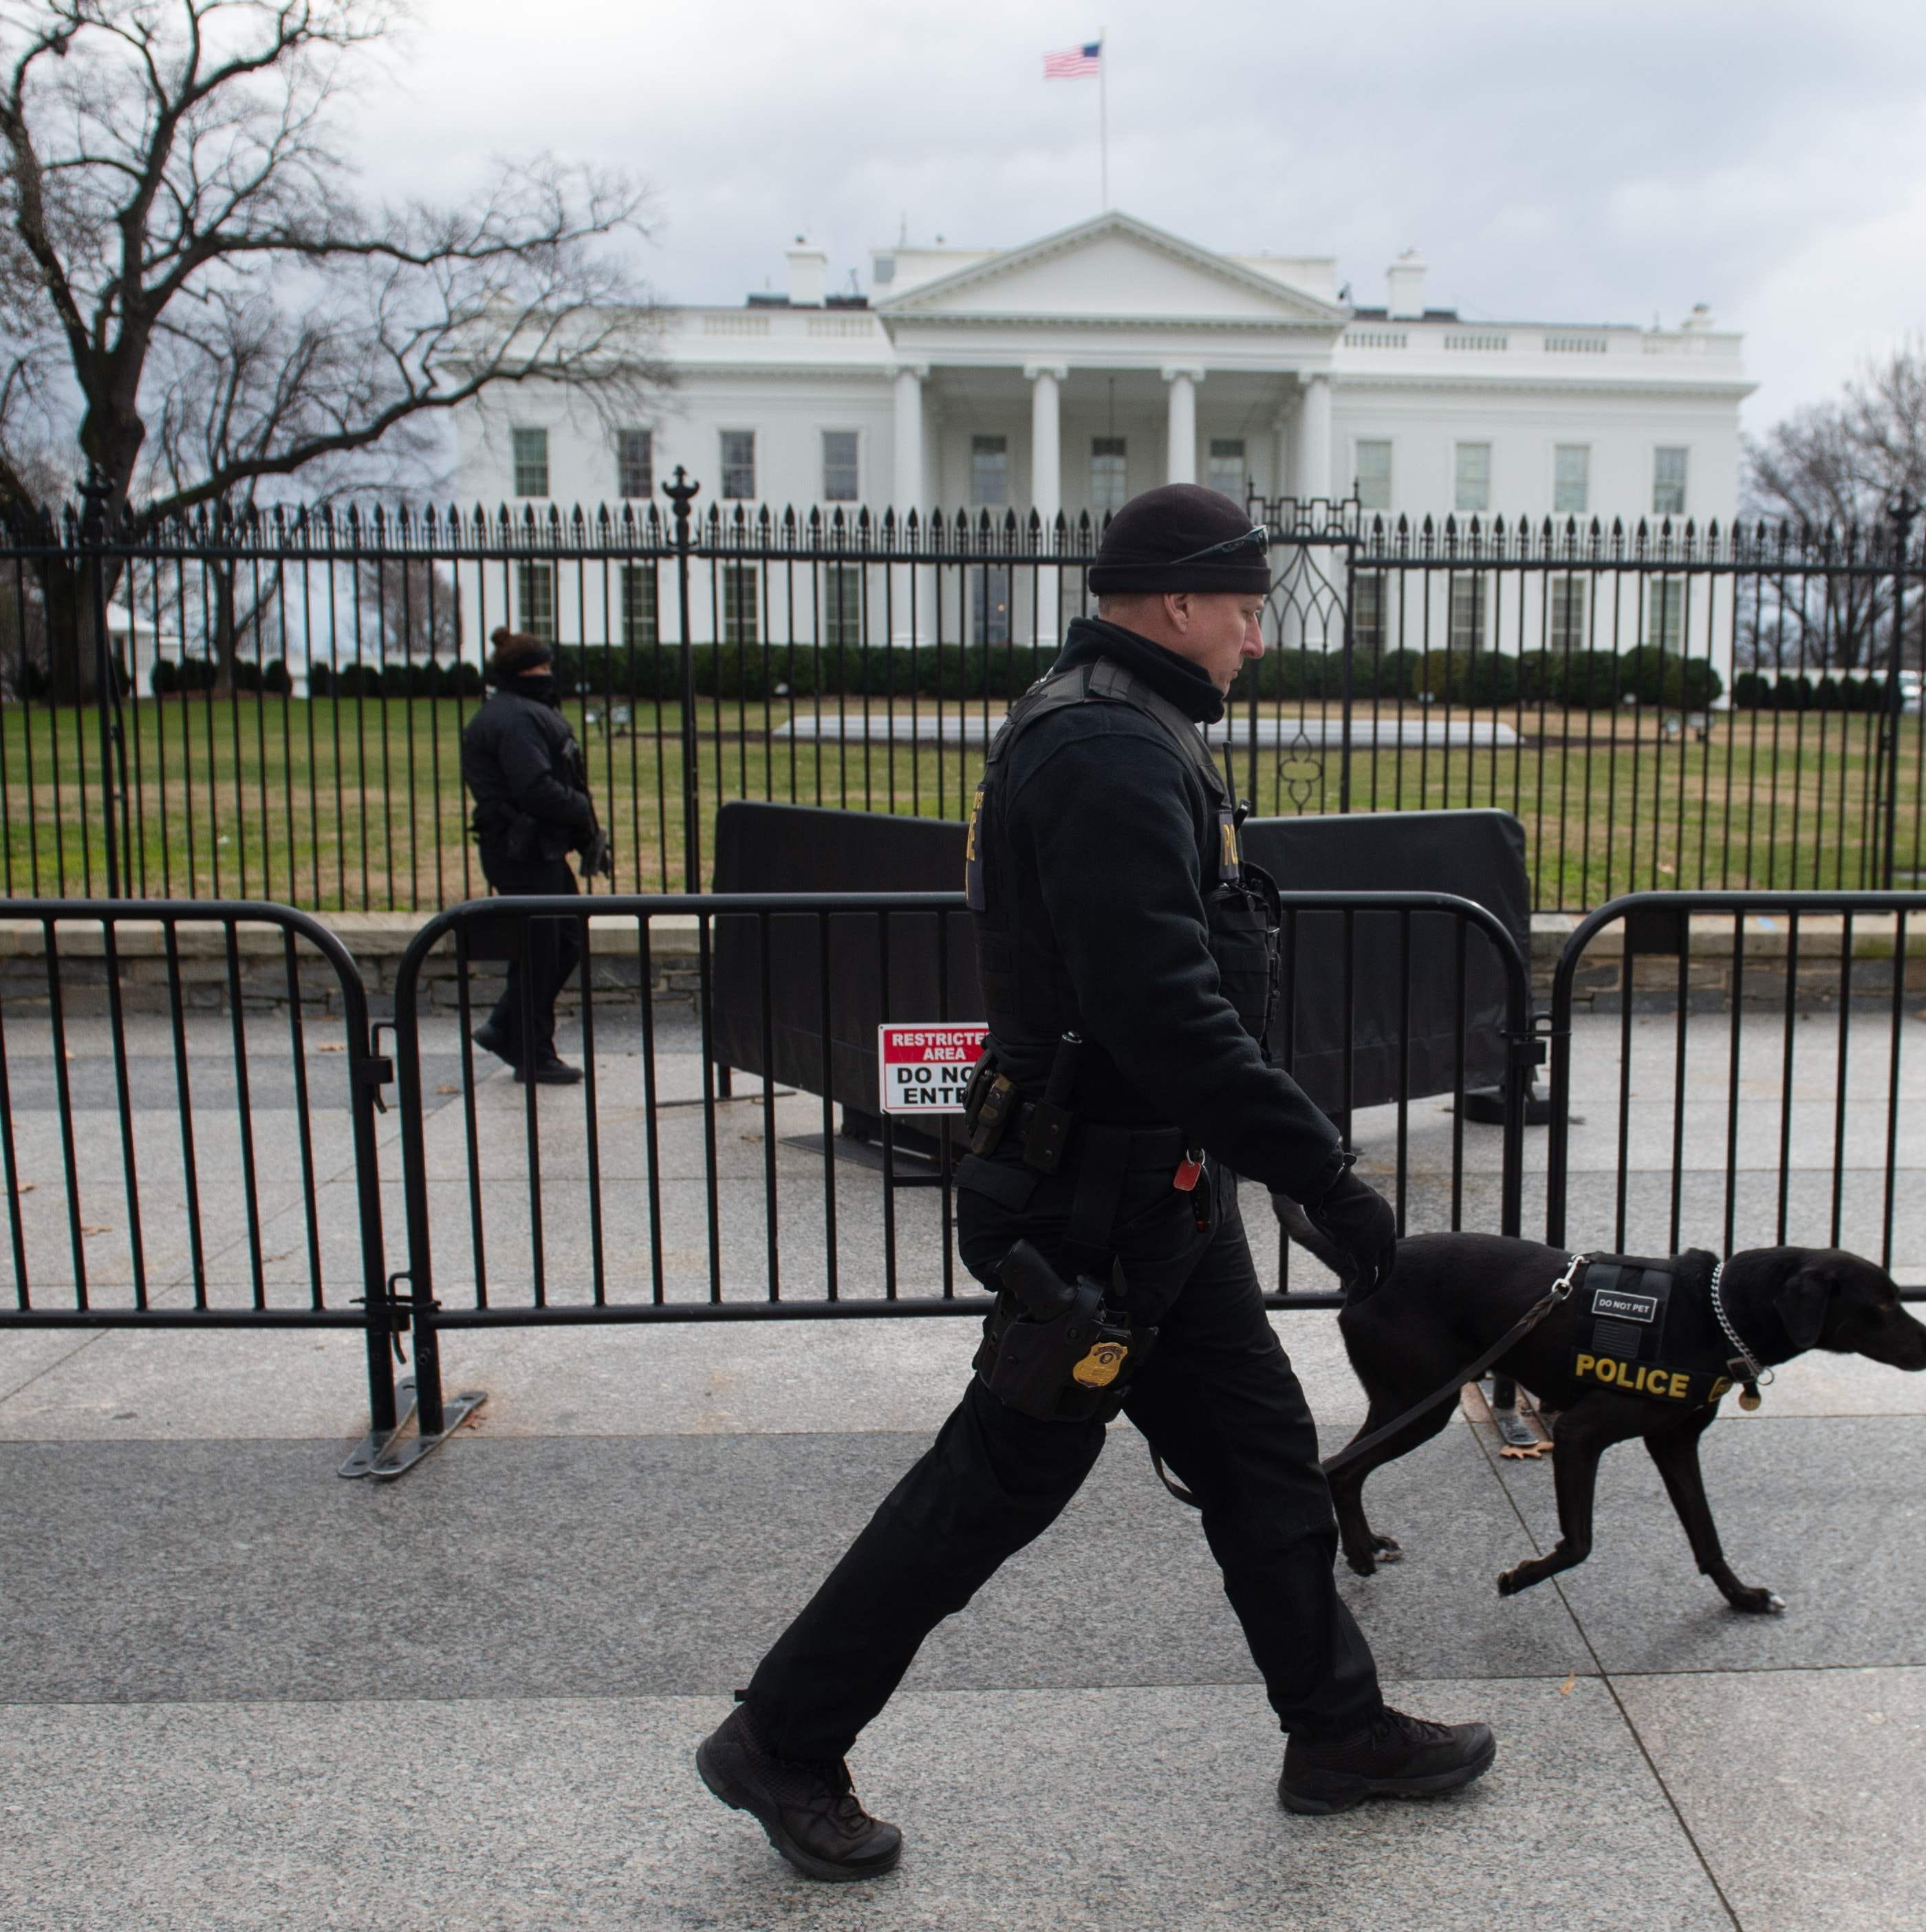 Members of the US Secret Service Uniformed Division patrol outside of the White House in Washington, DC, Jan. 9, 2019, on the 18th day of the partial government shutdown.